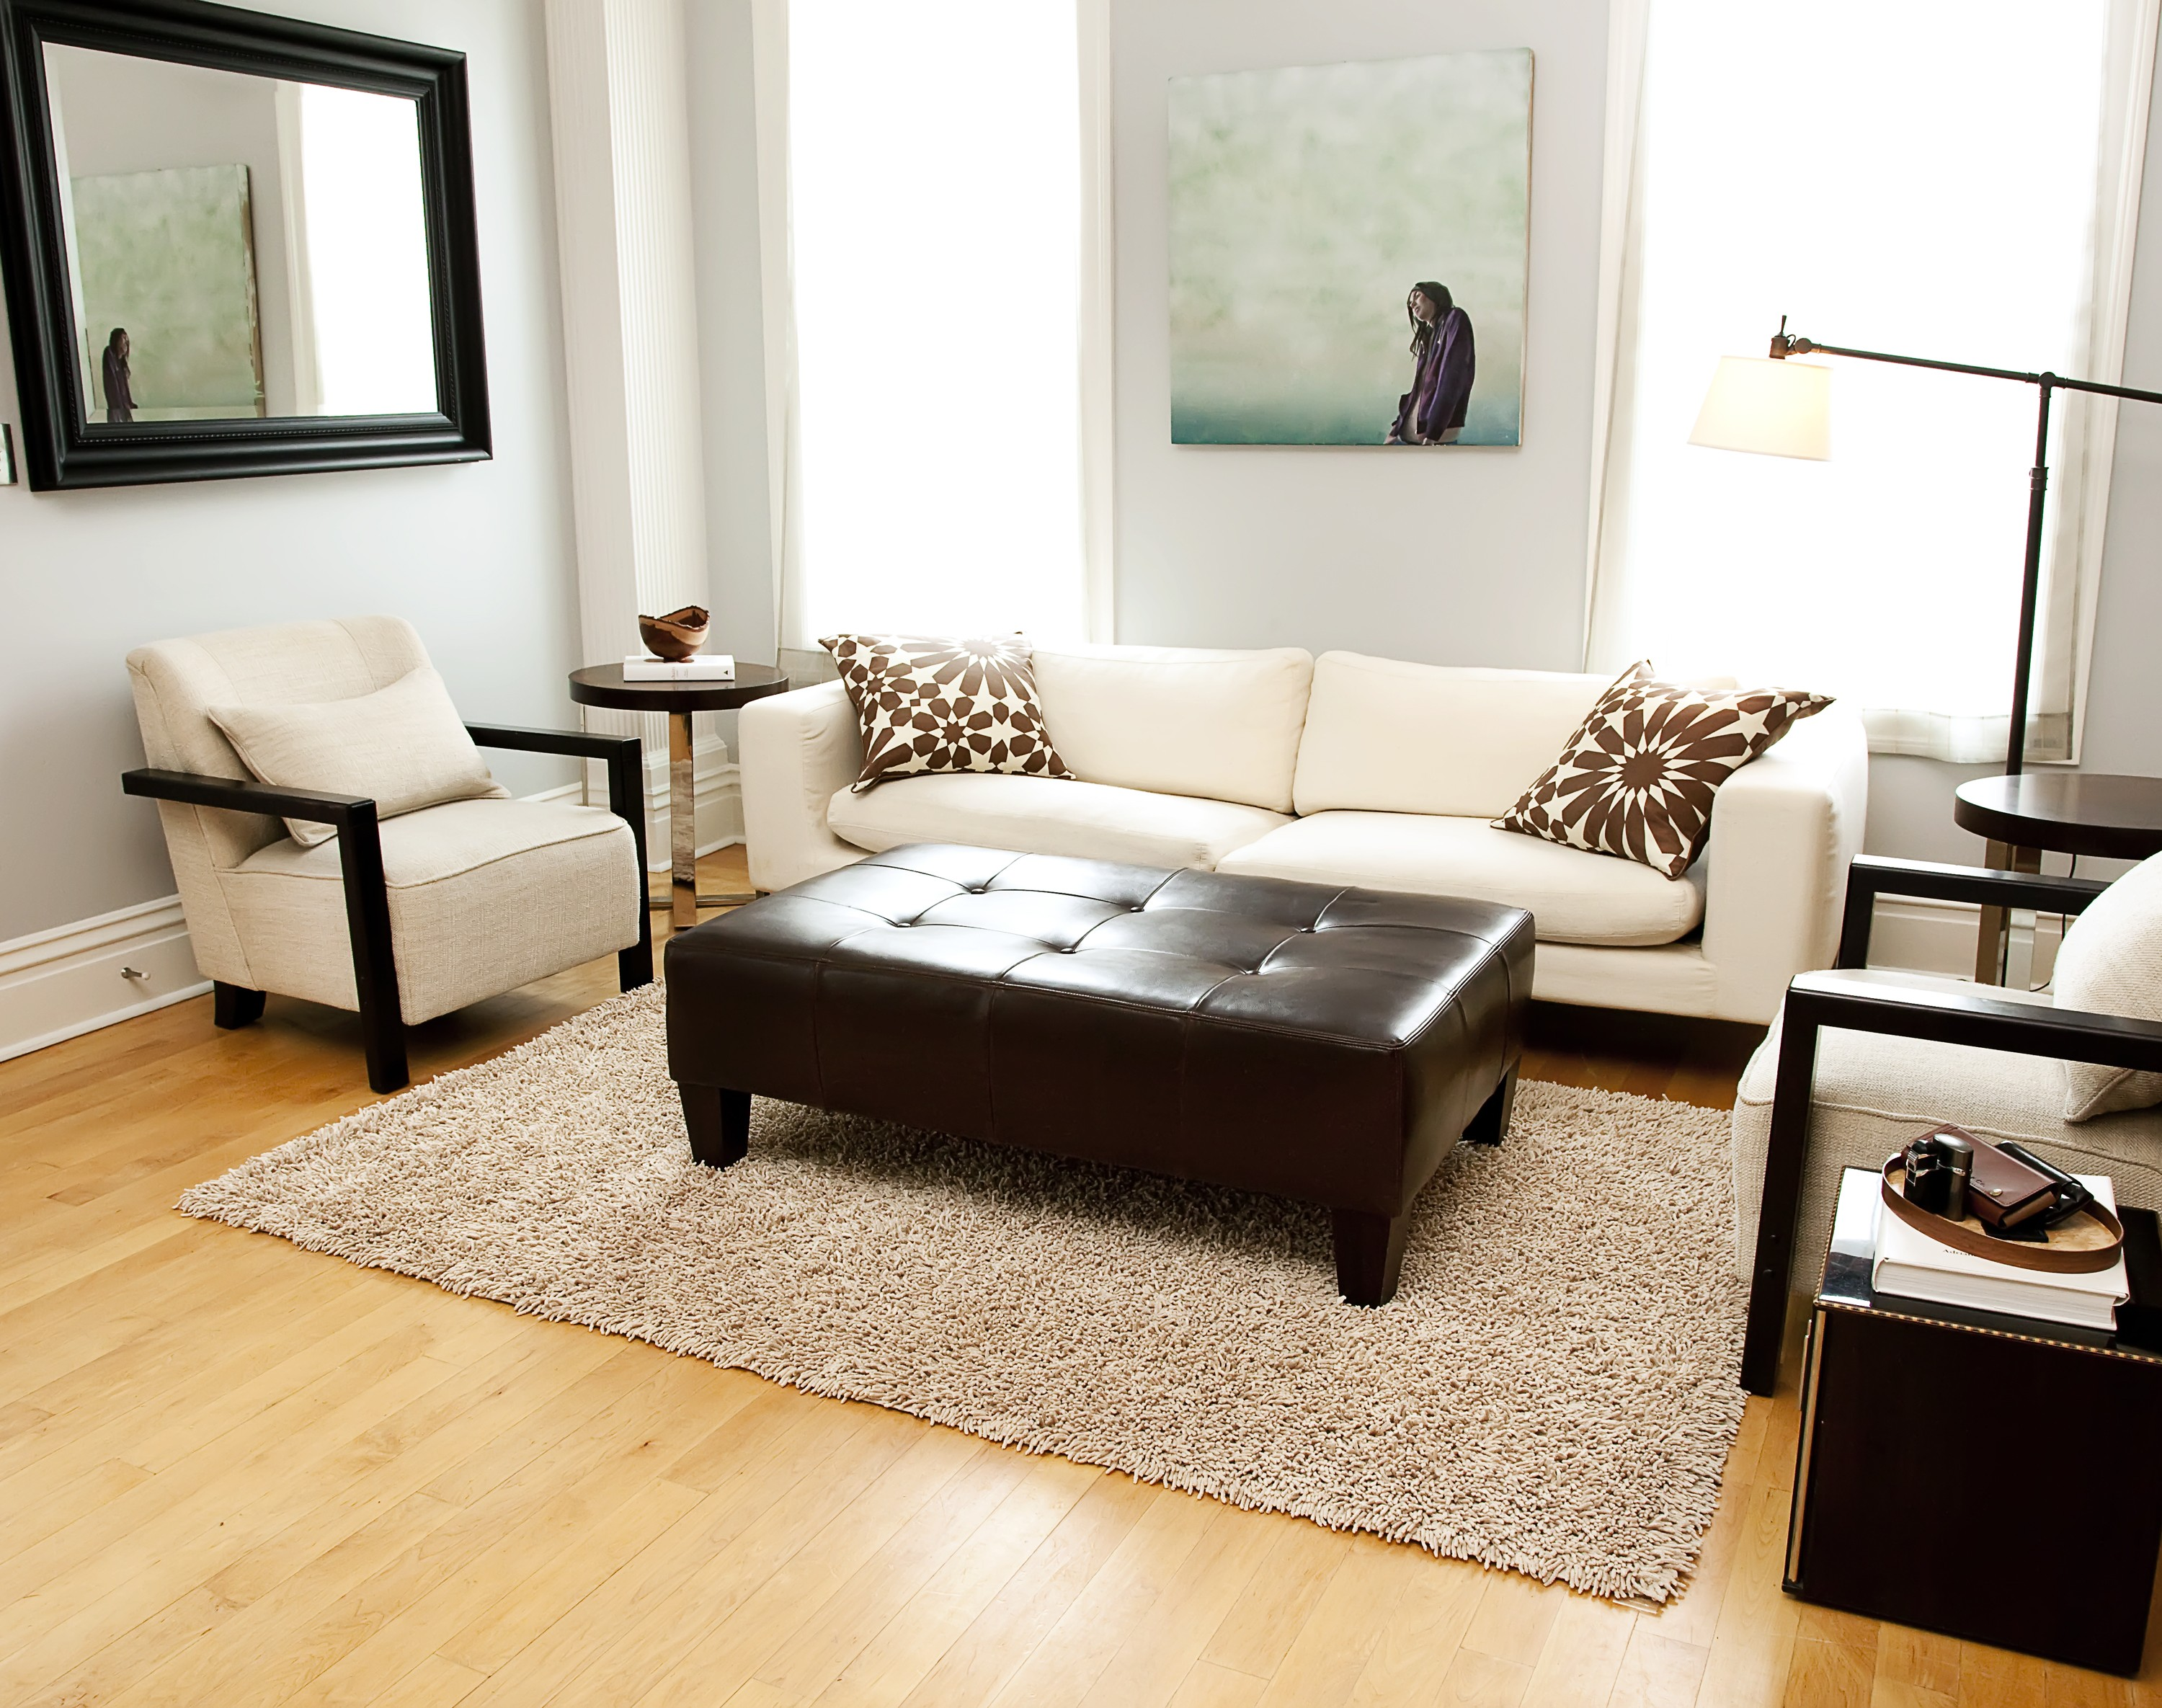 Buy Sisal Rugs Online To Augment The Decor Of Your Living